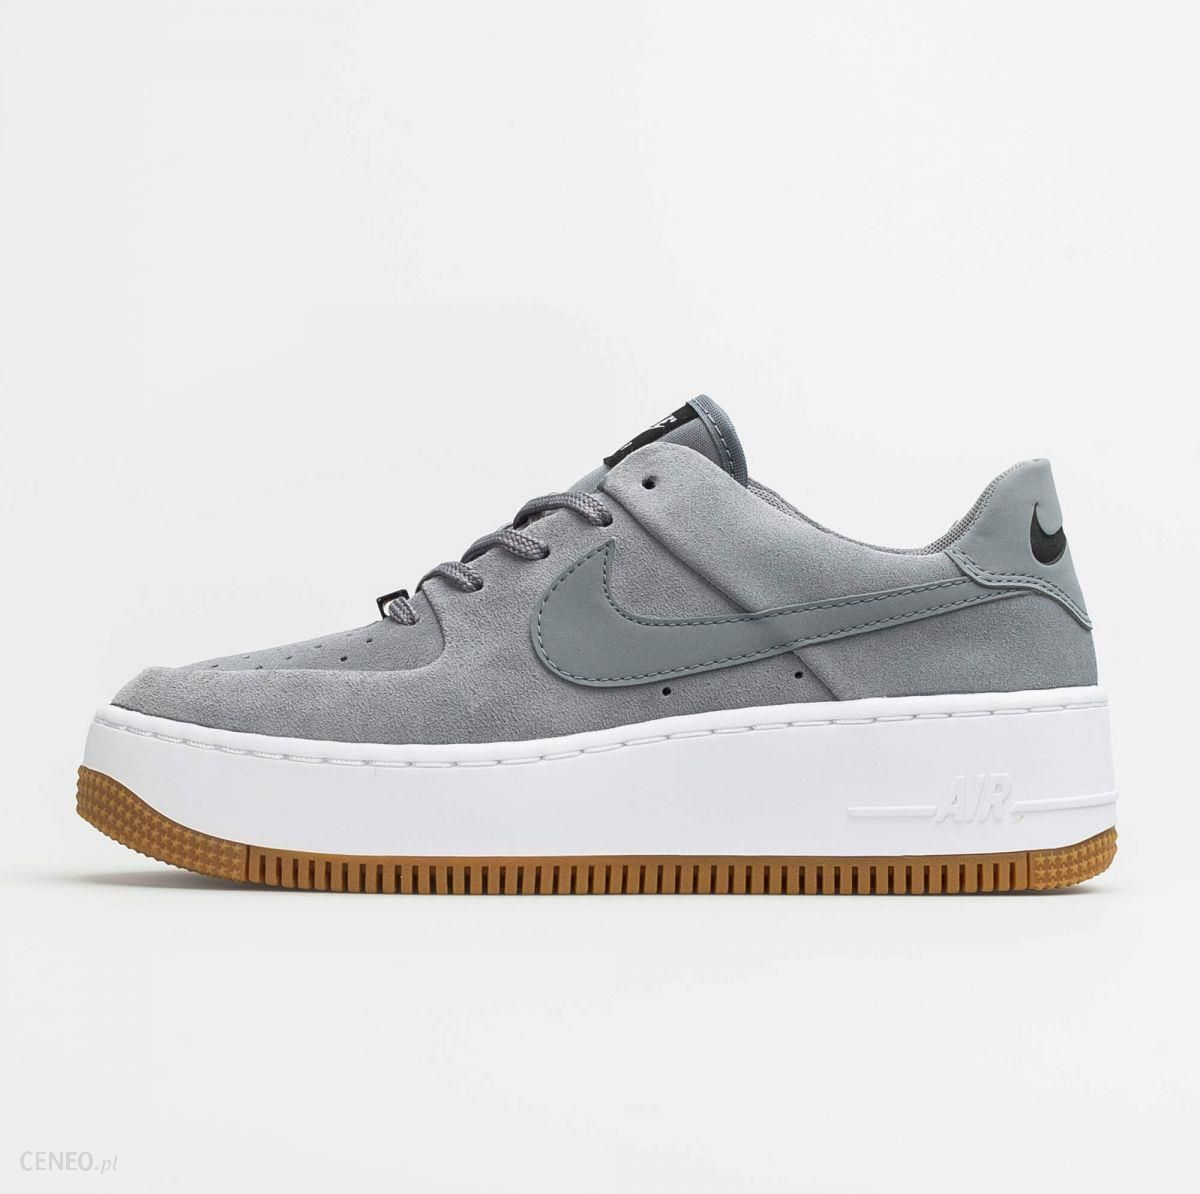 WMNS AIR FORCE 1 SAGE LOW AR5339 003 Ceny i opinie Ceneo.pl